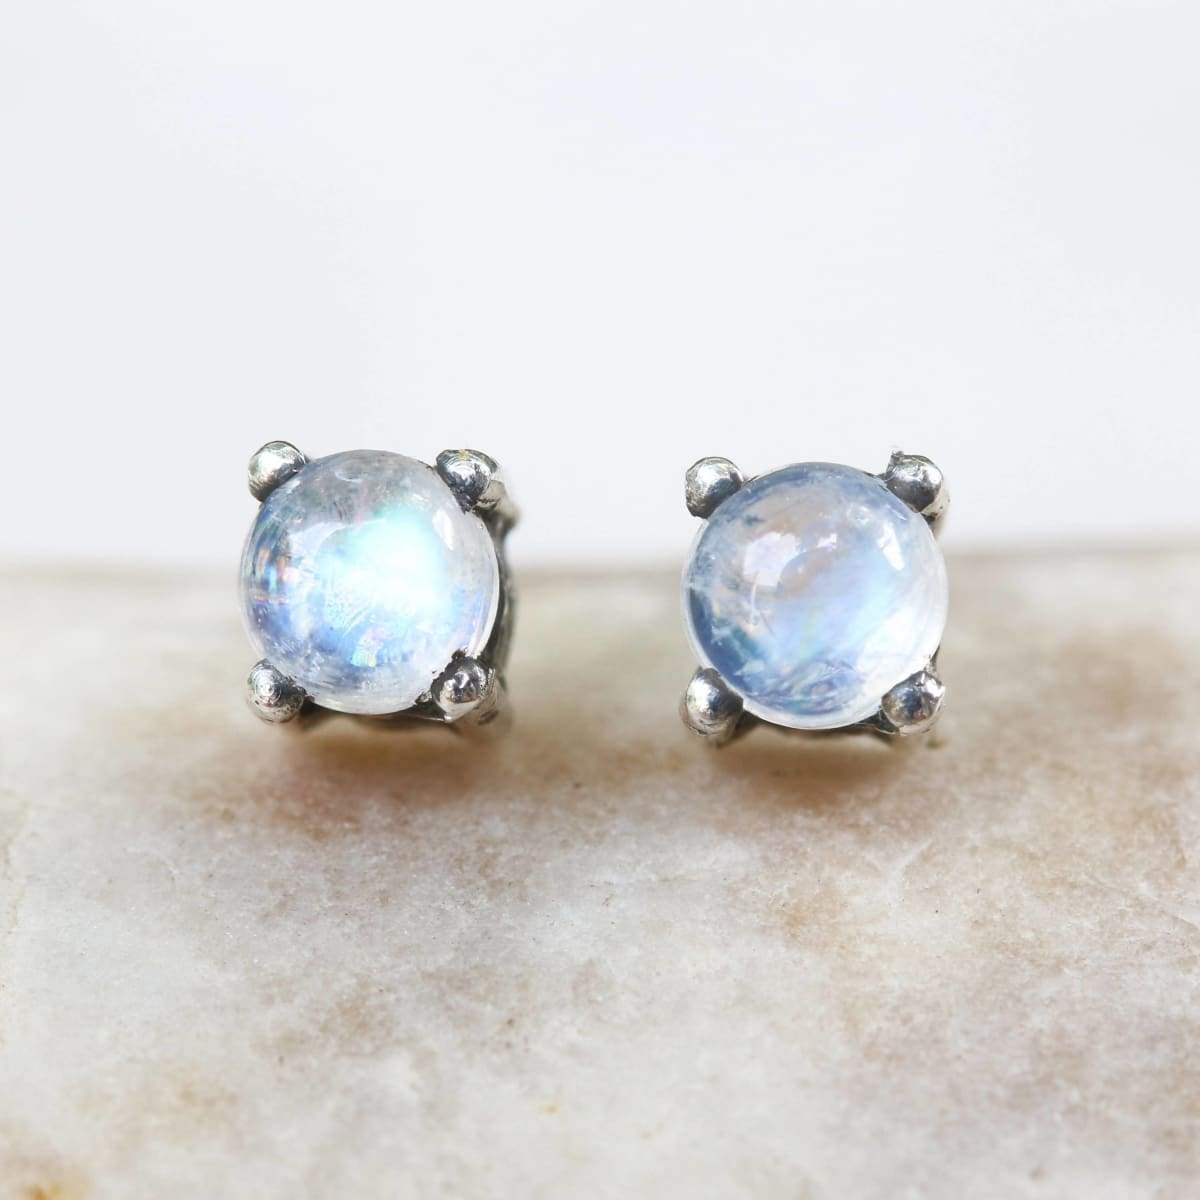 Earrings Sterling silver stud earrings with cabochon moonstone in prongs setting sterling post and backing